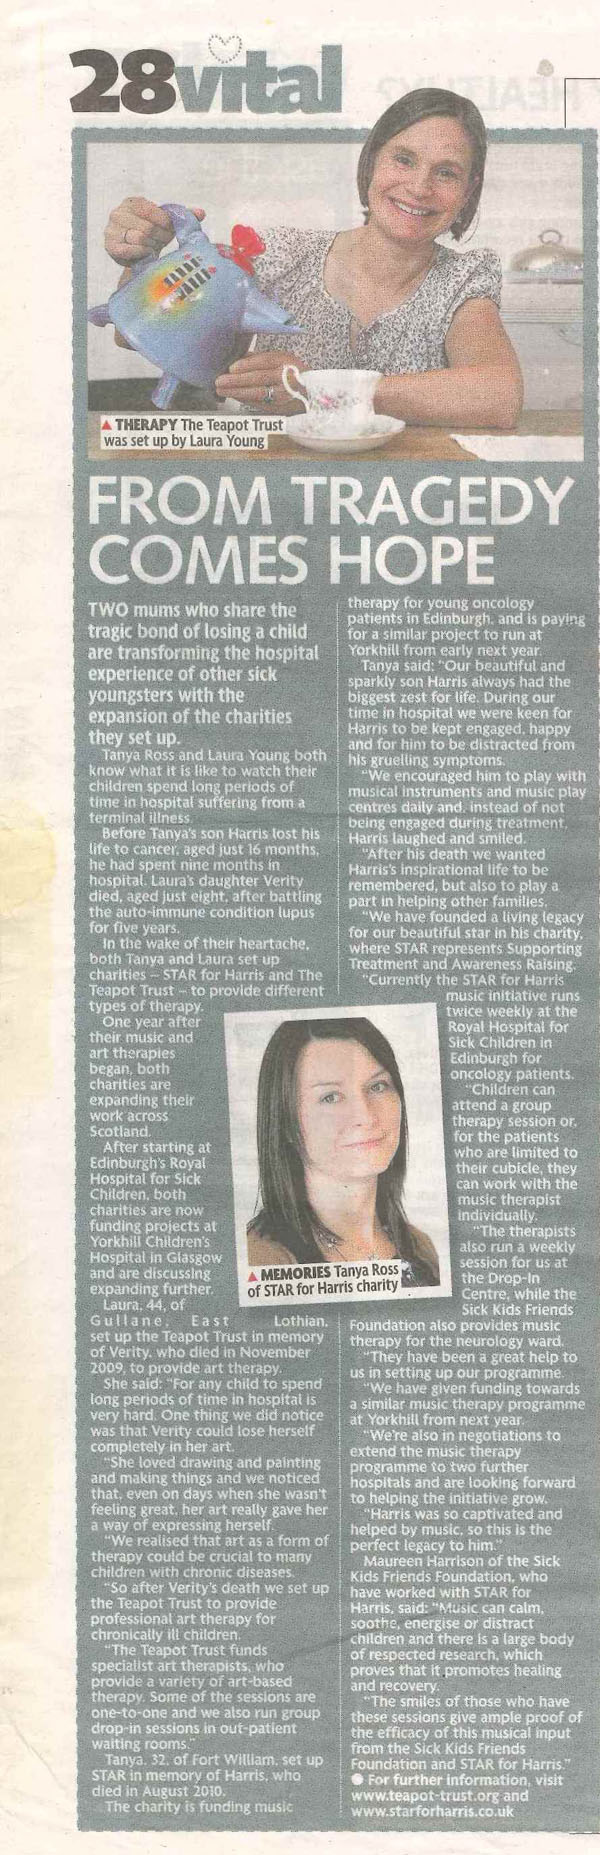 Harris - Daily Record 20 11 12